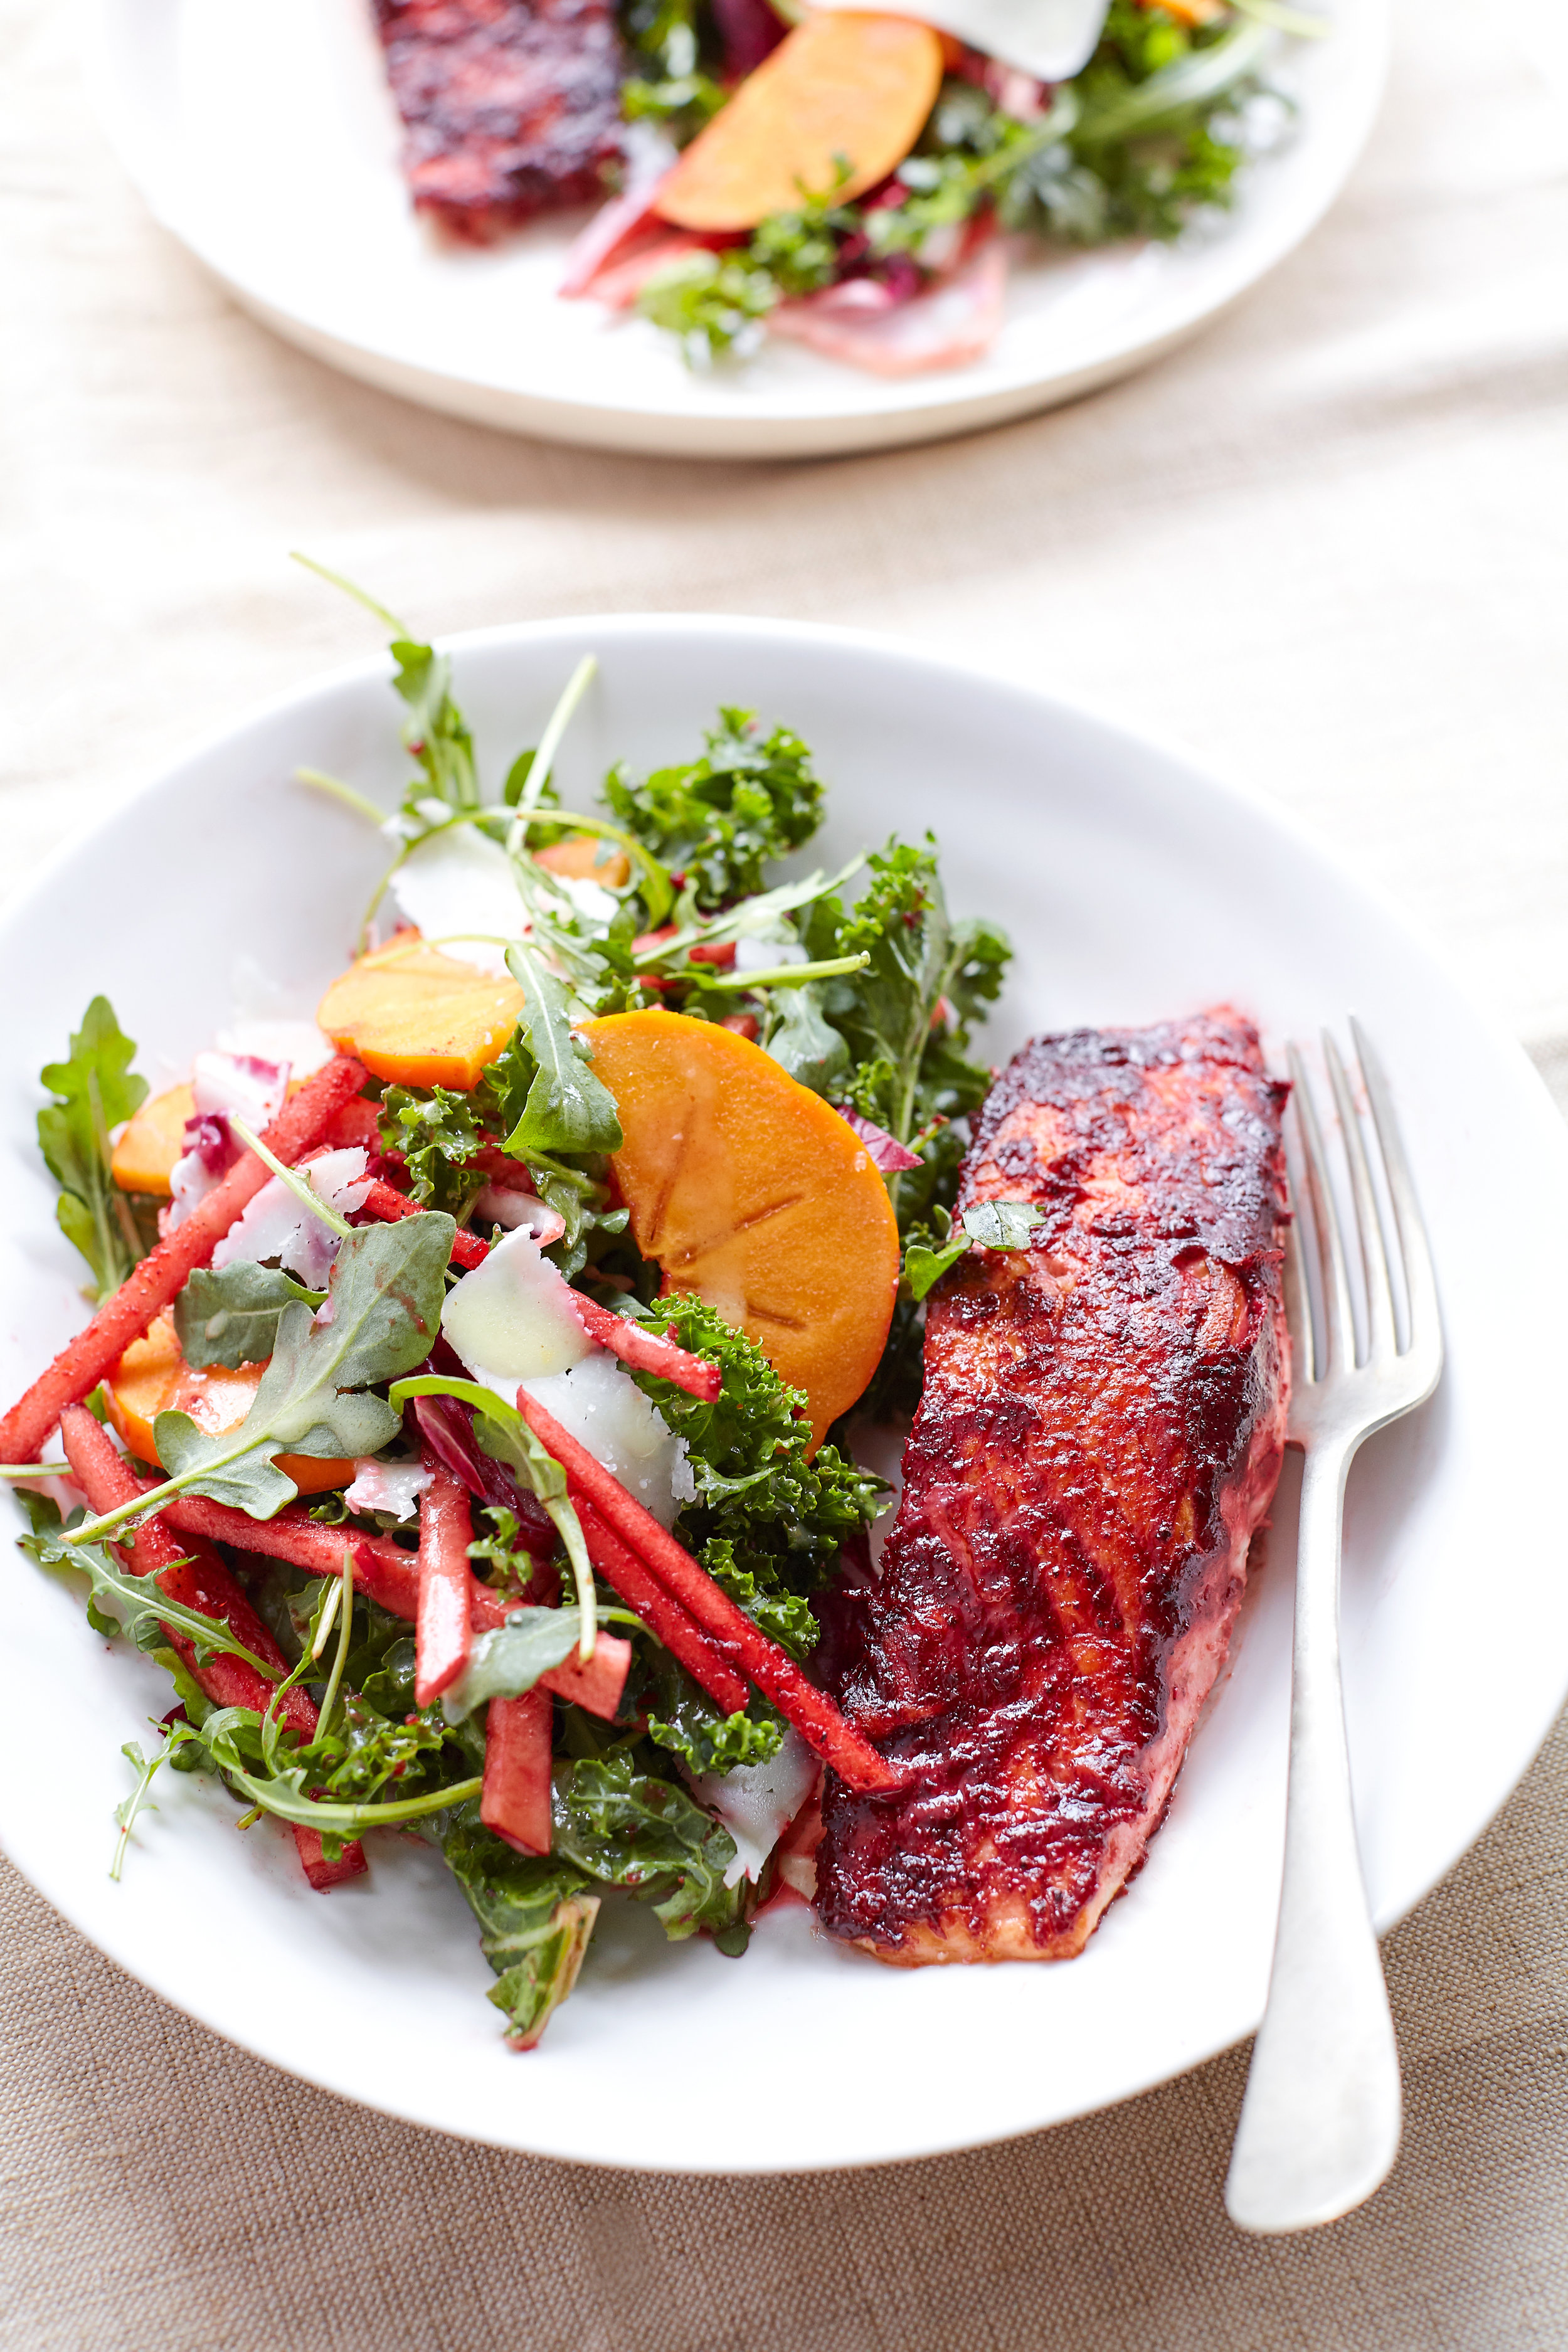 BEET HONEY MUSTARD SALMON WITH BEET STAINED-APPLE MATCHSTICK SALAD